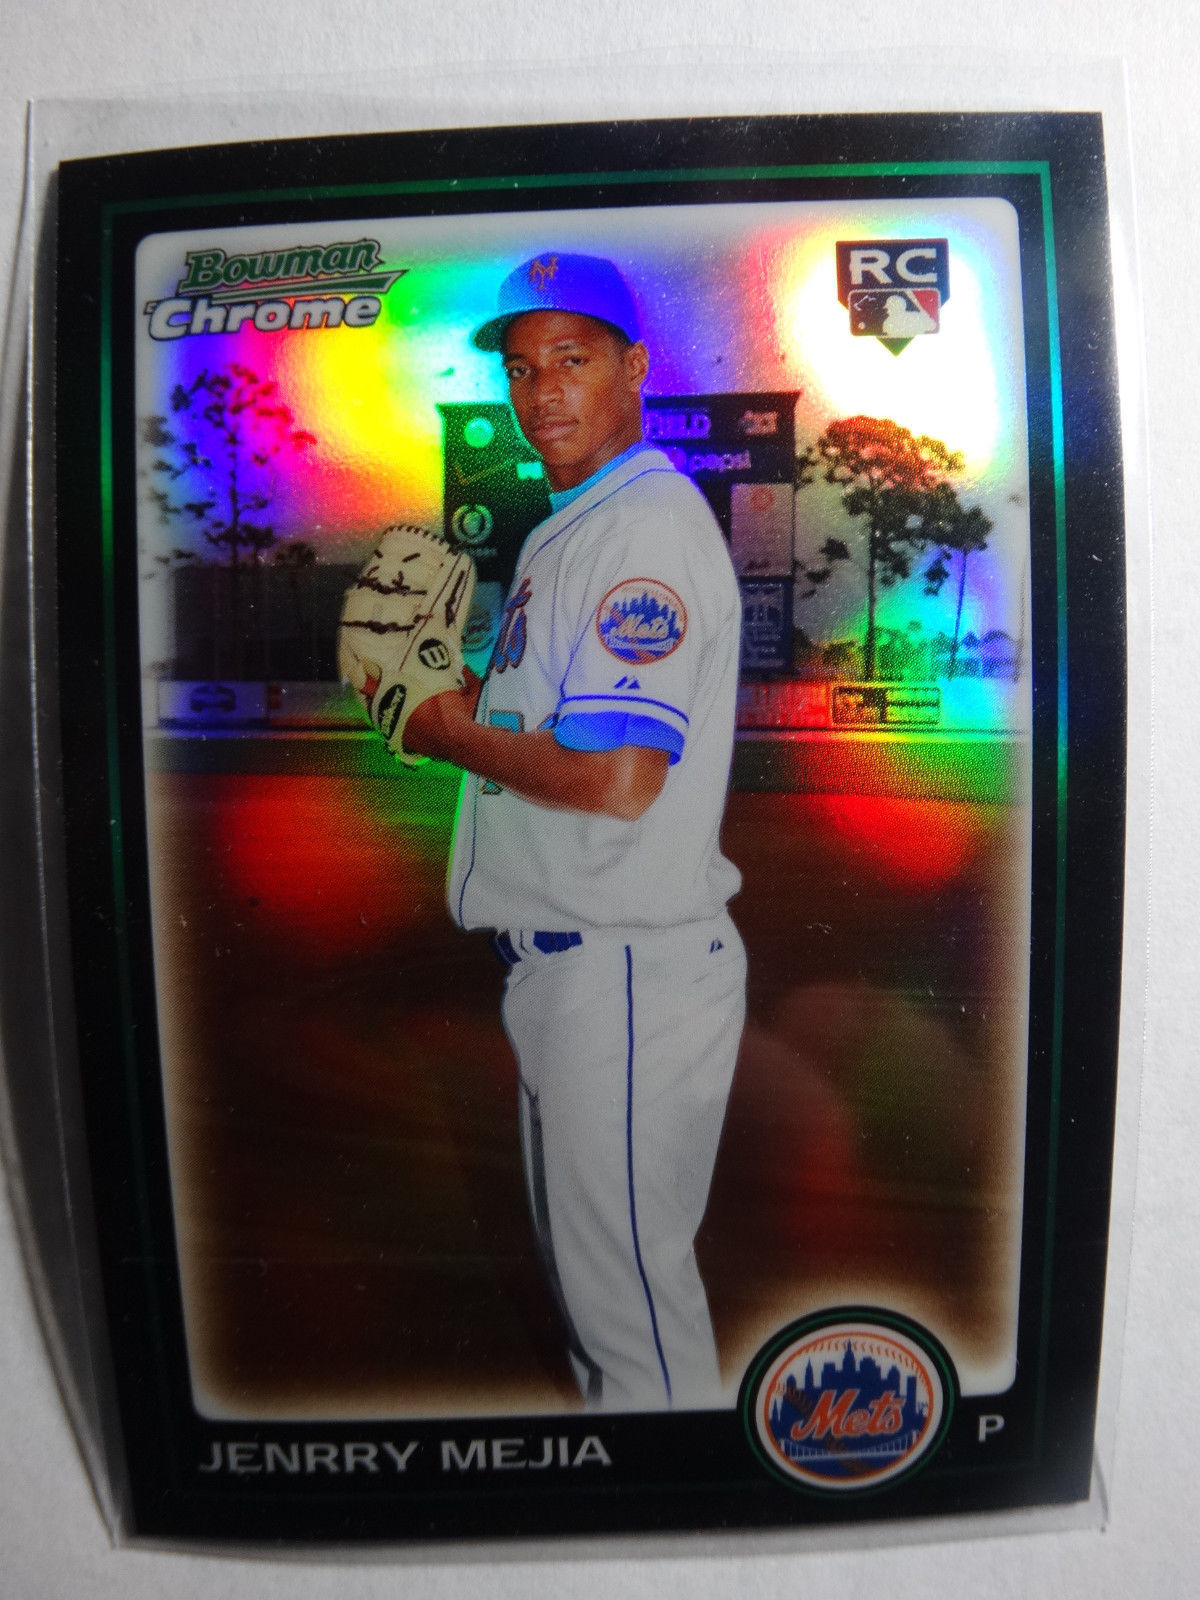 Primary image for 2010 Bowman Chrome #187 Jenrry Mejia New York Mets Refractor Baseball RC Card